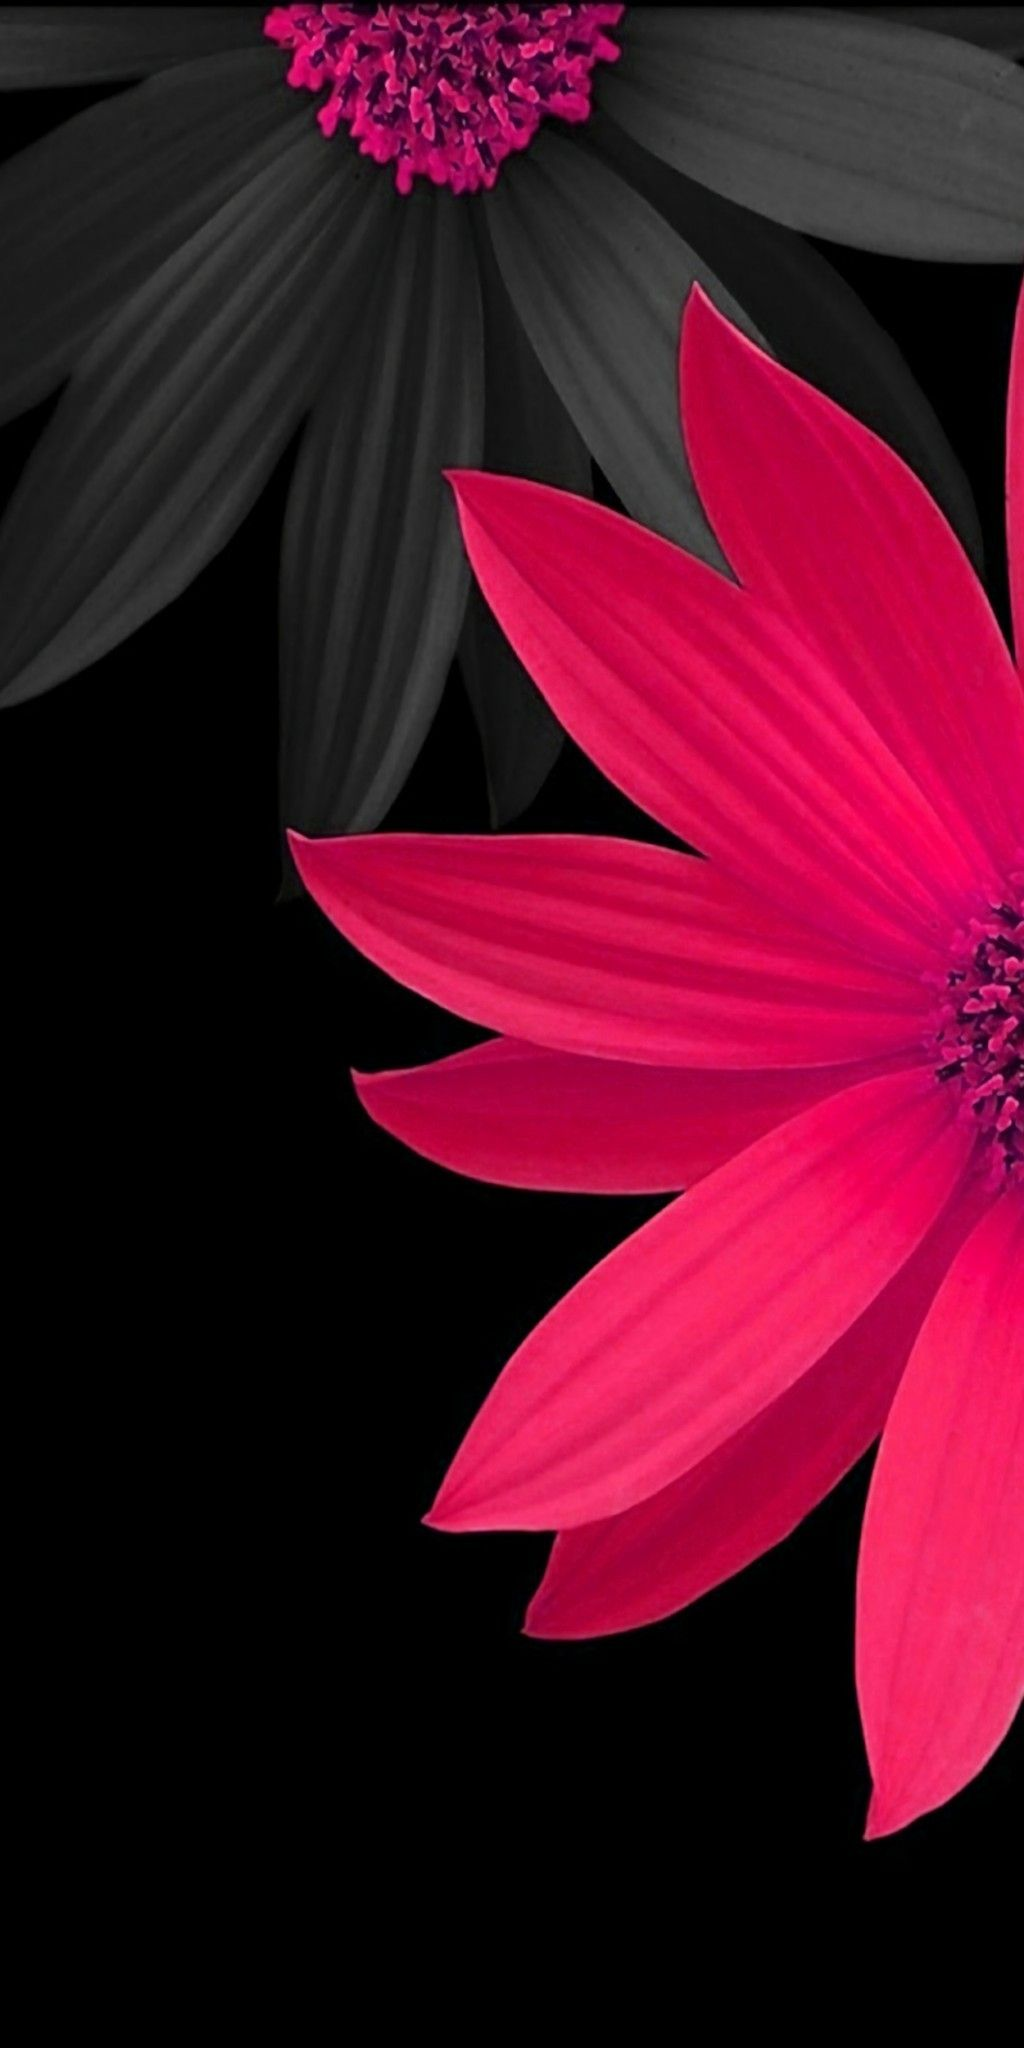 floral iphone wallpaper pink and black 3d flowers wallpaper pink and flowers 10624